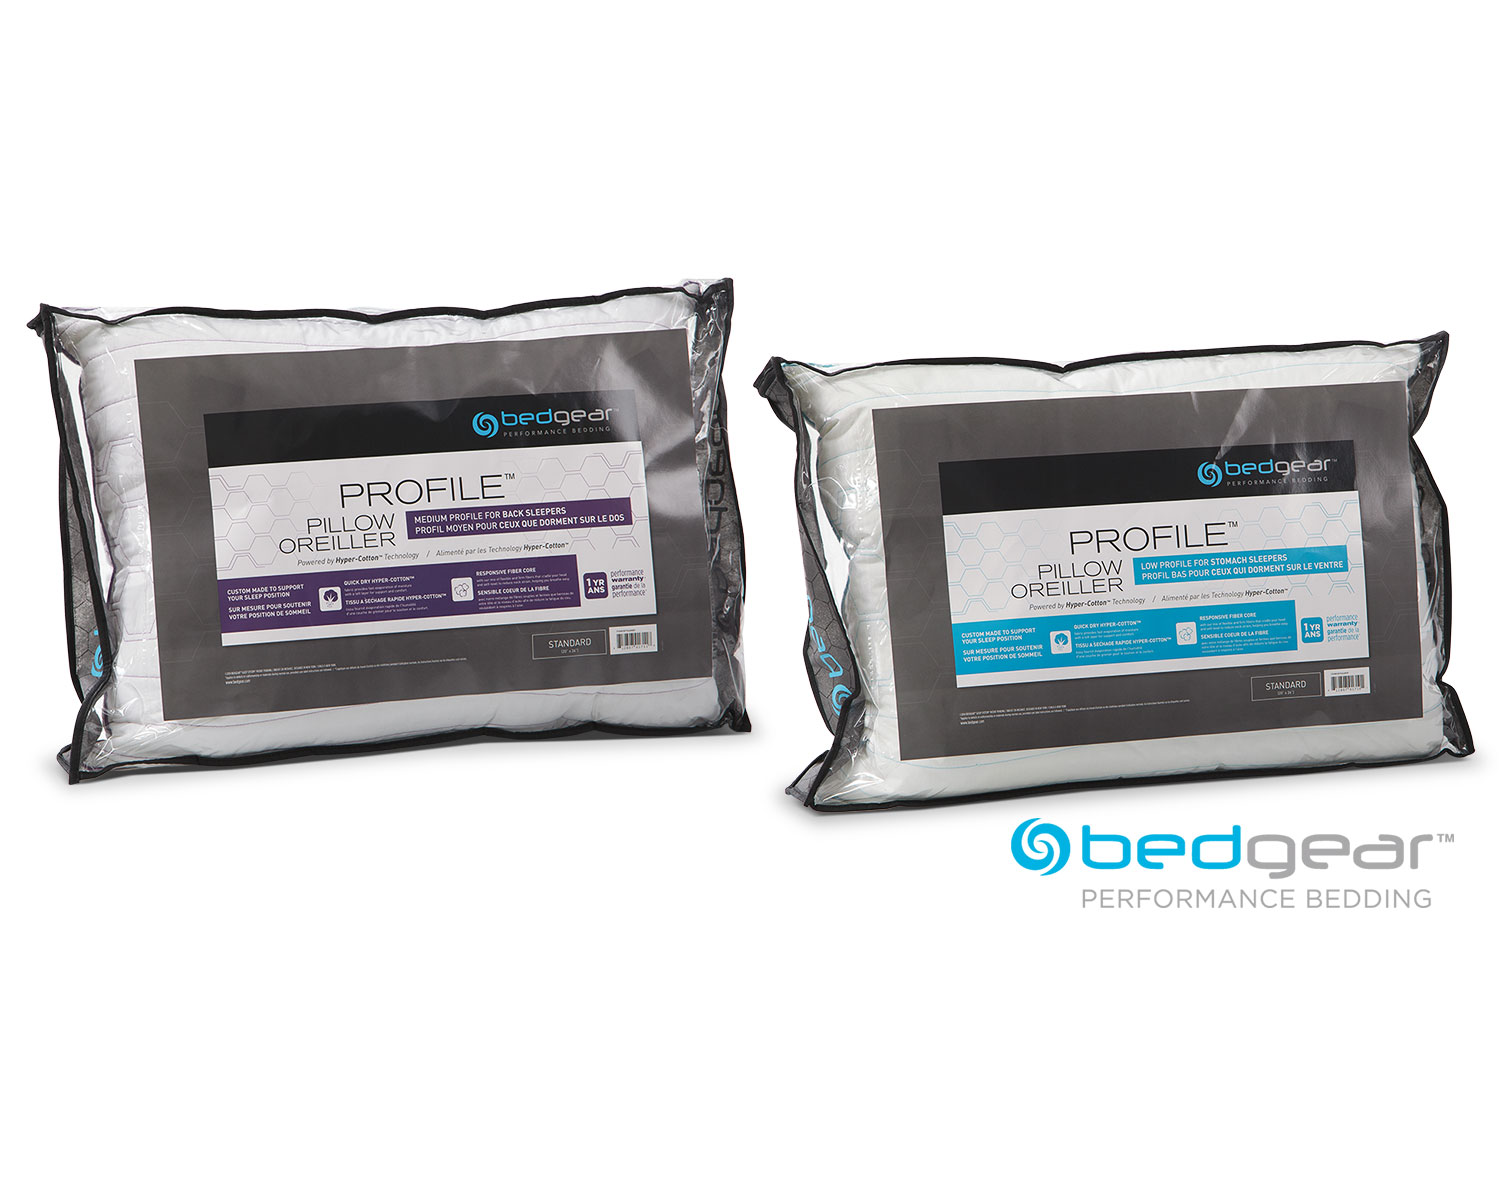 The Profile Pillow Collection